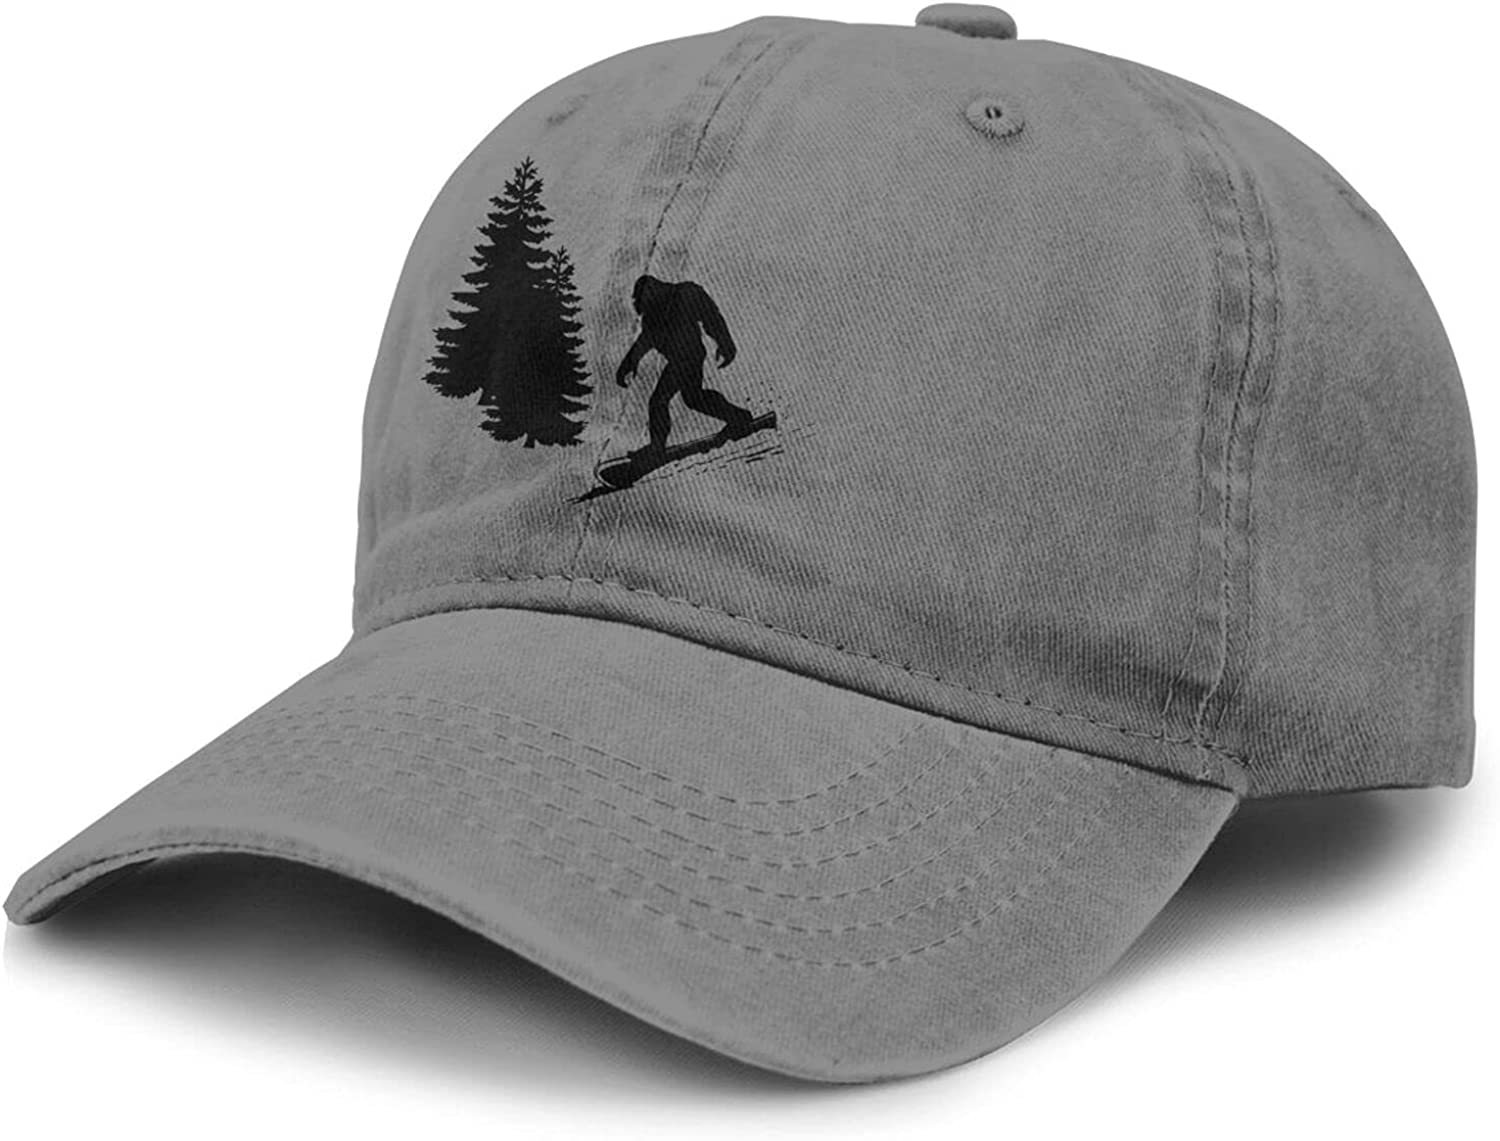 PARKNOTES Bigfoot Skiing Cheap and Durable Adult Cowboy Hat Unisex